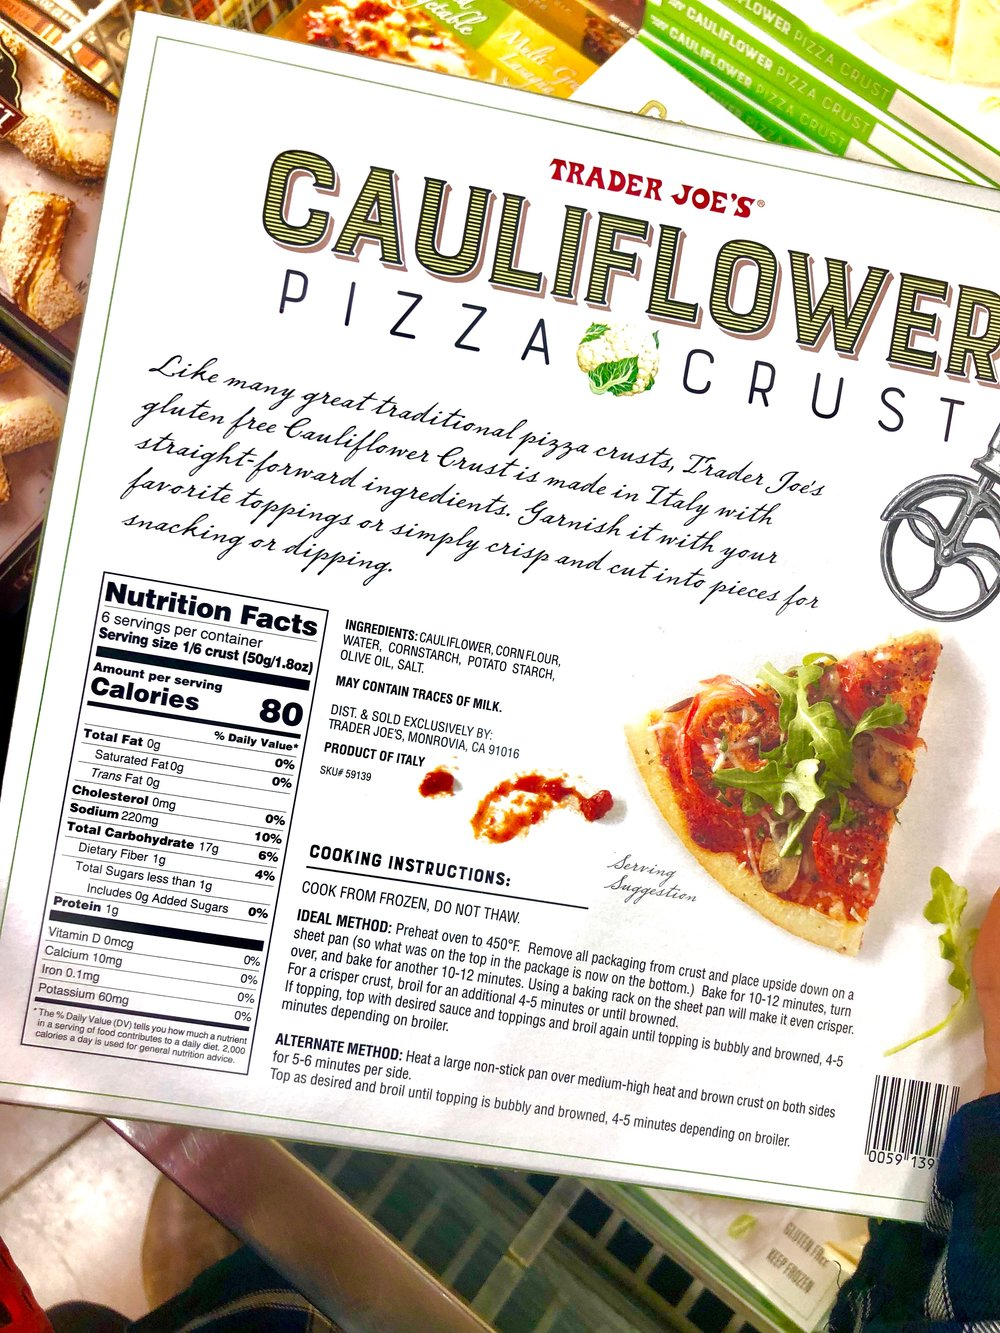 Ingredients and macronutrients for the cauliflower pizza crust.